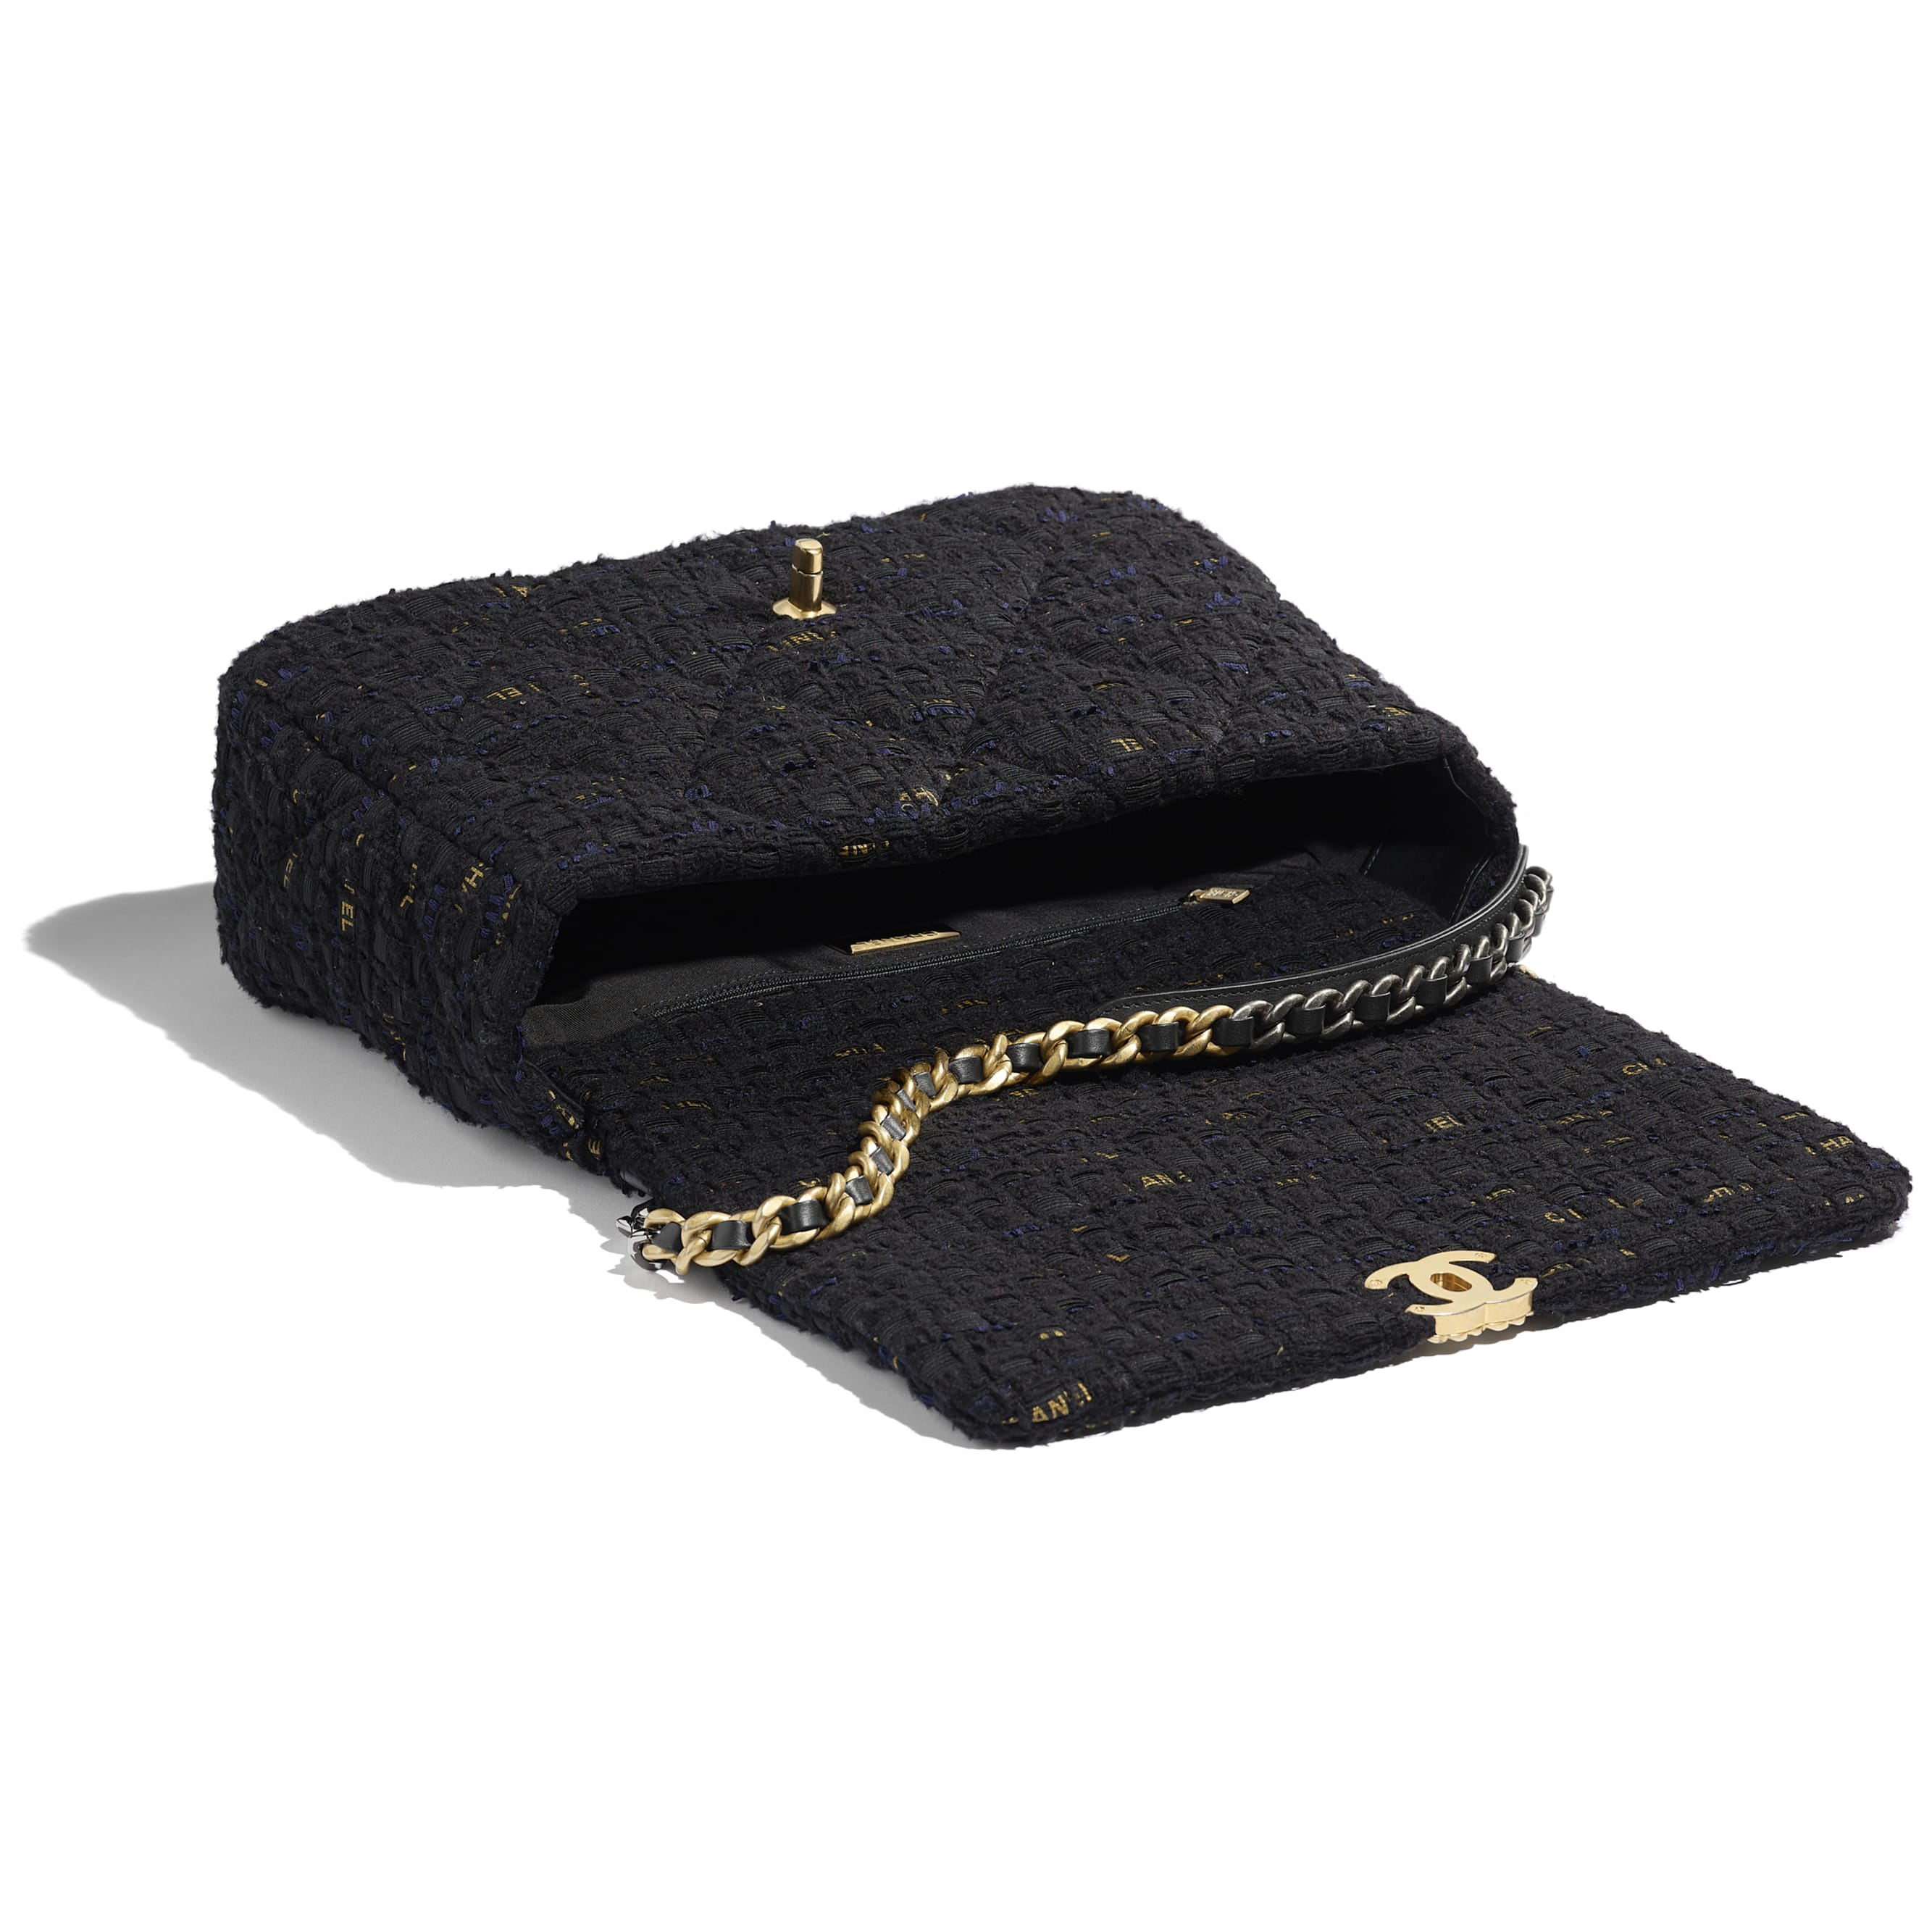 CHANEL 19 Maxi Flap Bag - Black, Navy Blue & Gold - Tweed, Gold-Tone, Silver-Tone & Ruthenium-Finish Metal - CHANEL - Other view - see standard sized version